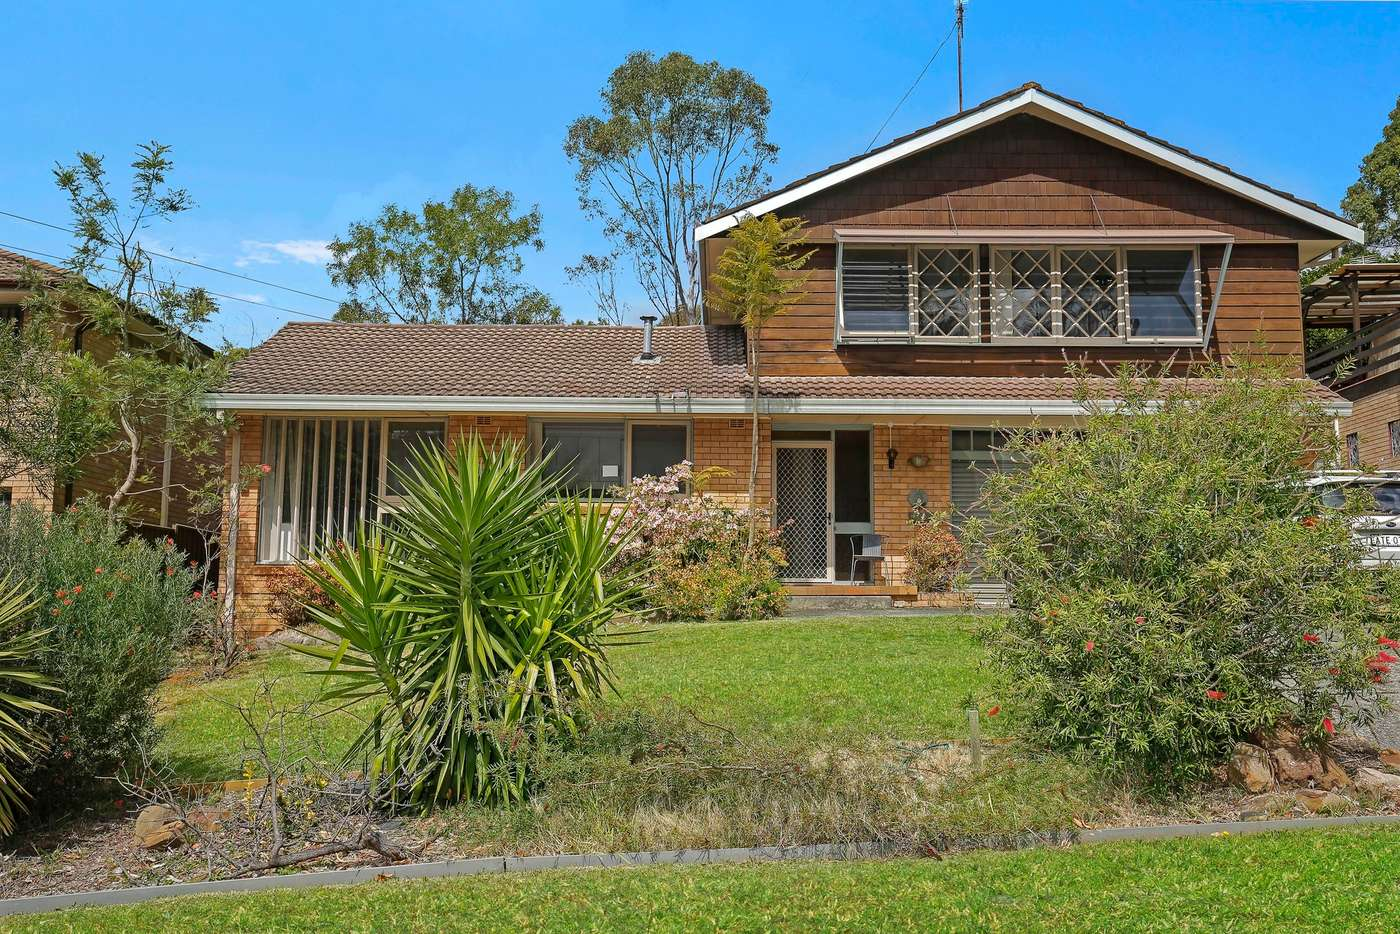 Main view of Homely house listing, 1/21 Dallas Street, Keiraville NSW 2500